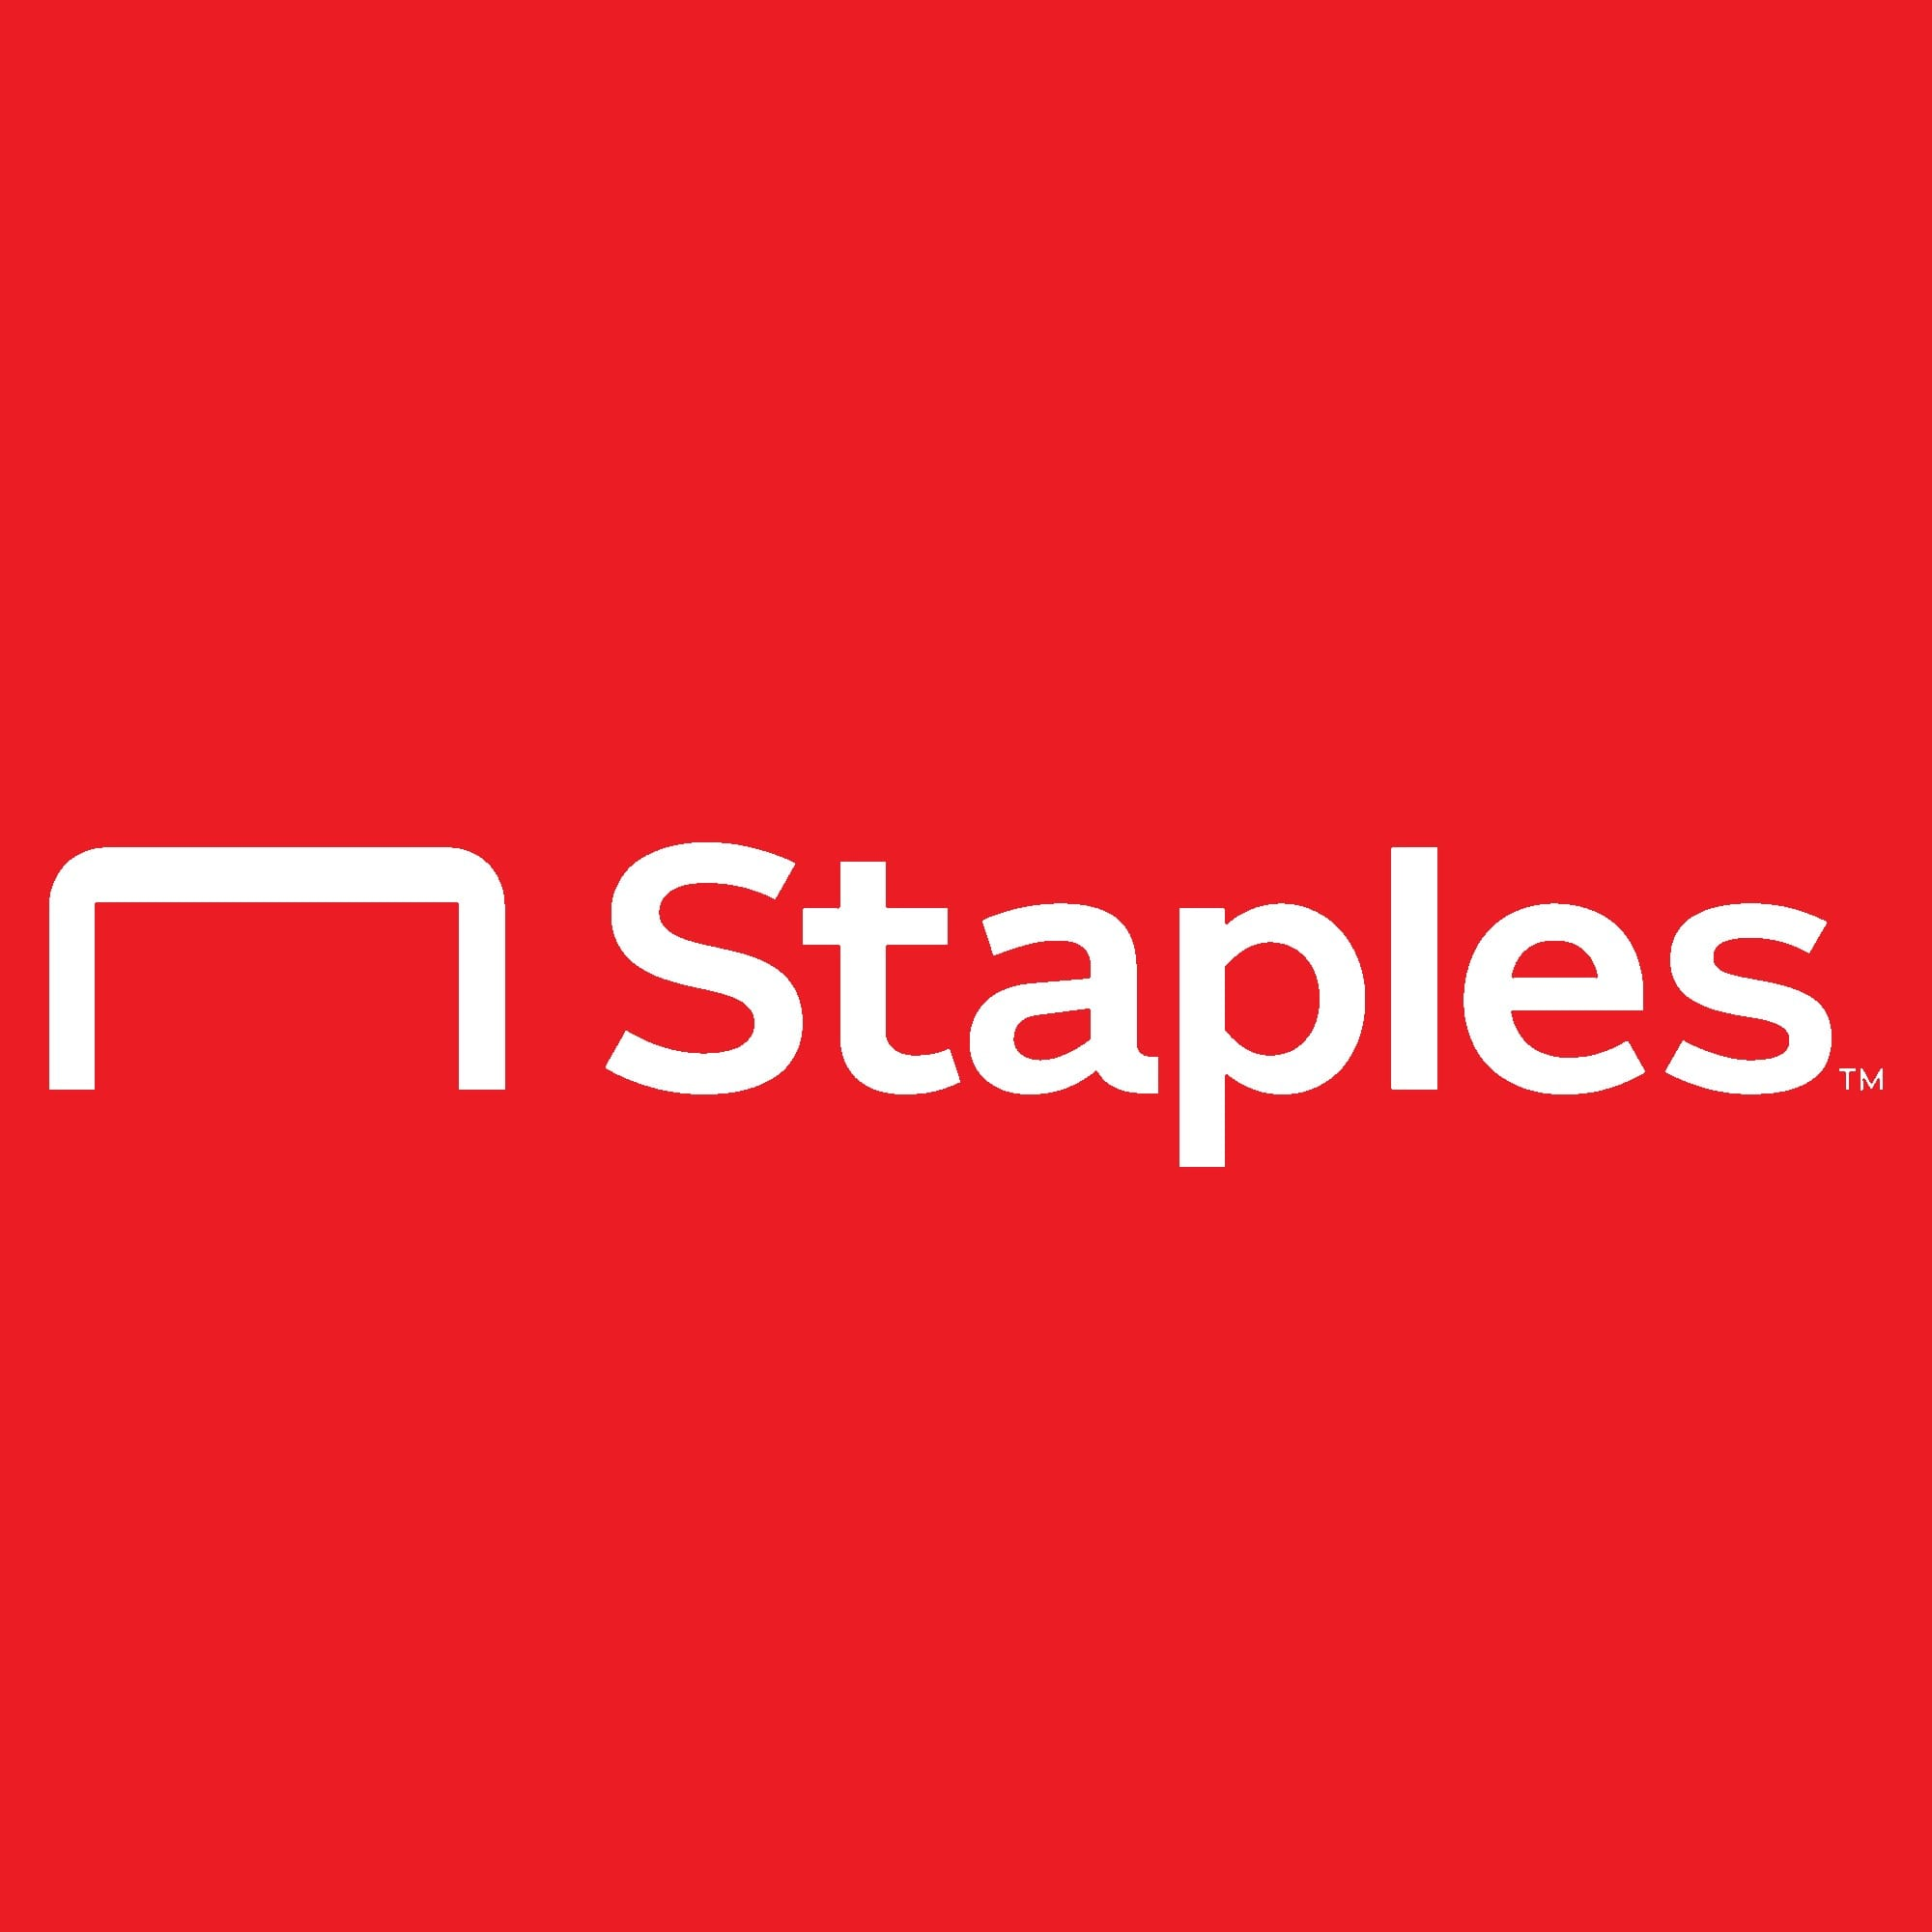 Buy 4, Get 1 Free on Healthy & Safe Essentials at Staples.com!